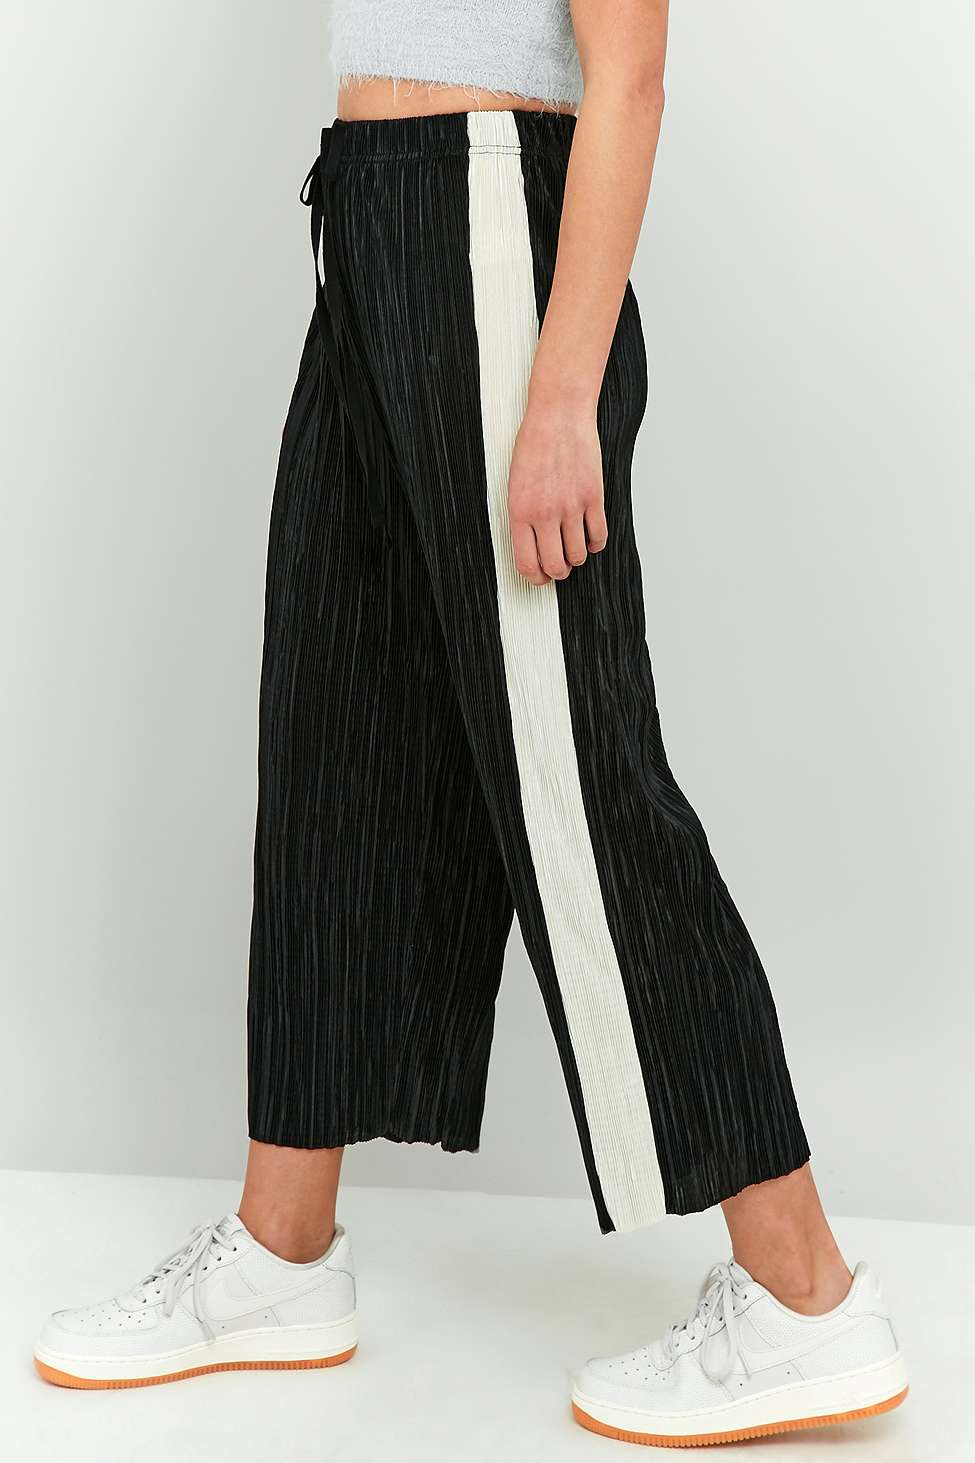 Slide View: 1: Light Before Dark Awkward Length Side Stripe Plisse Trousers